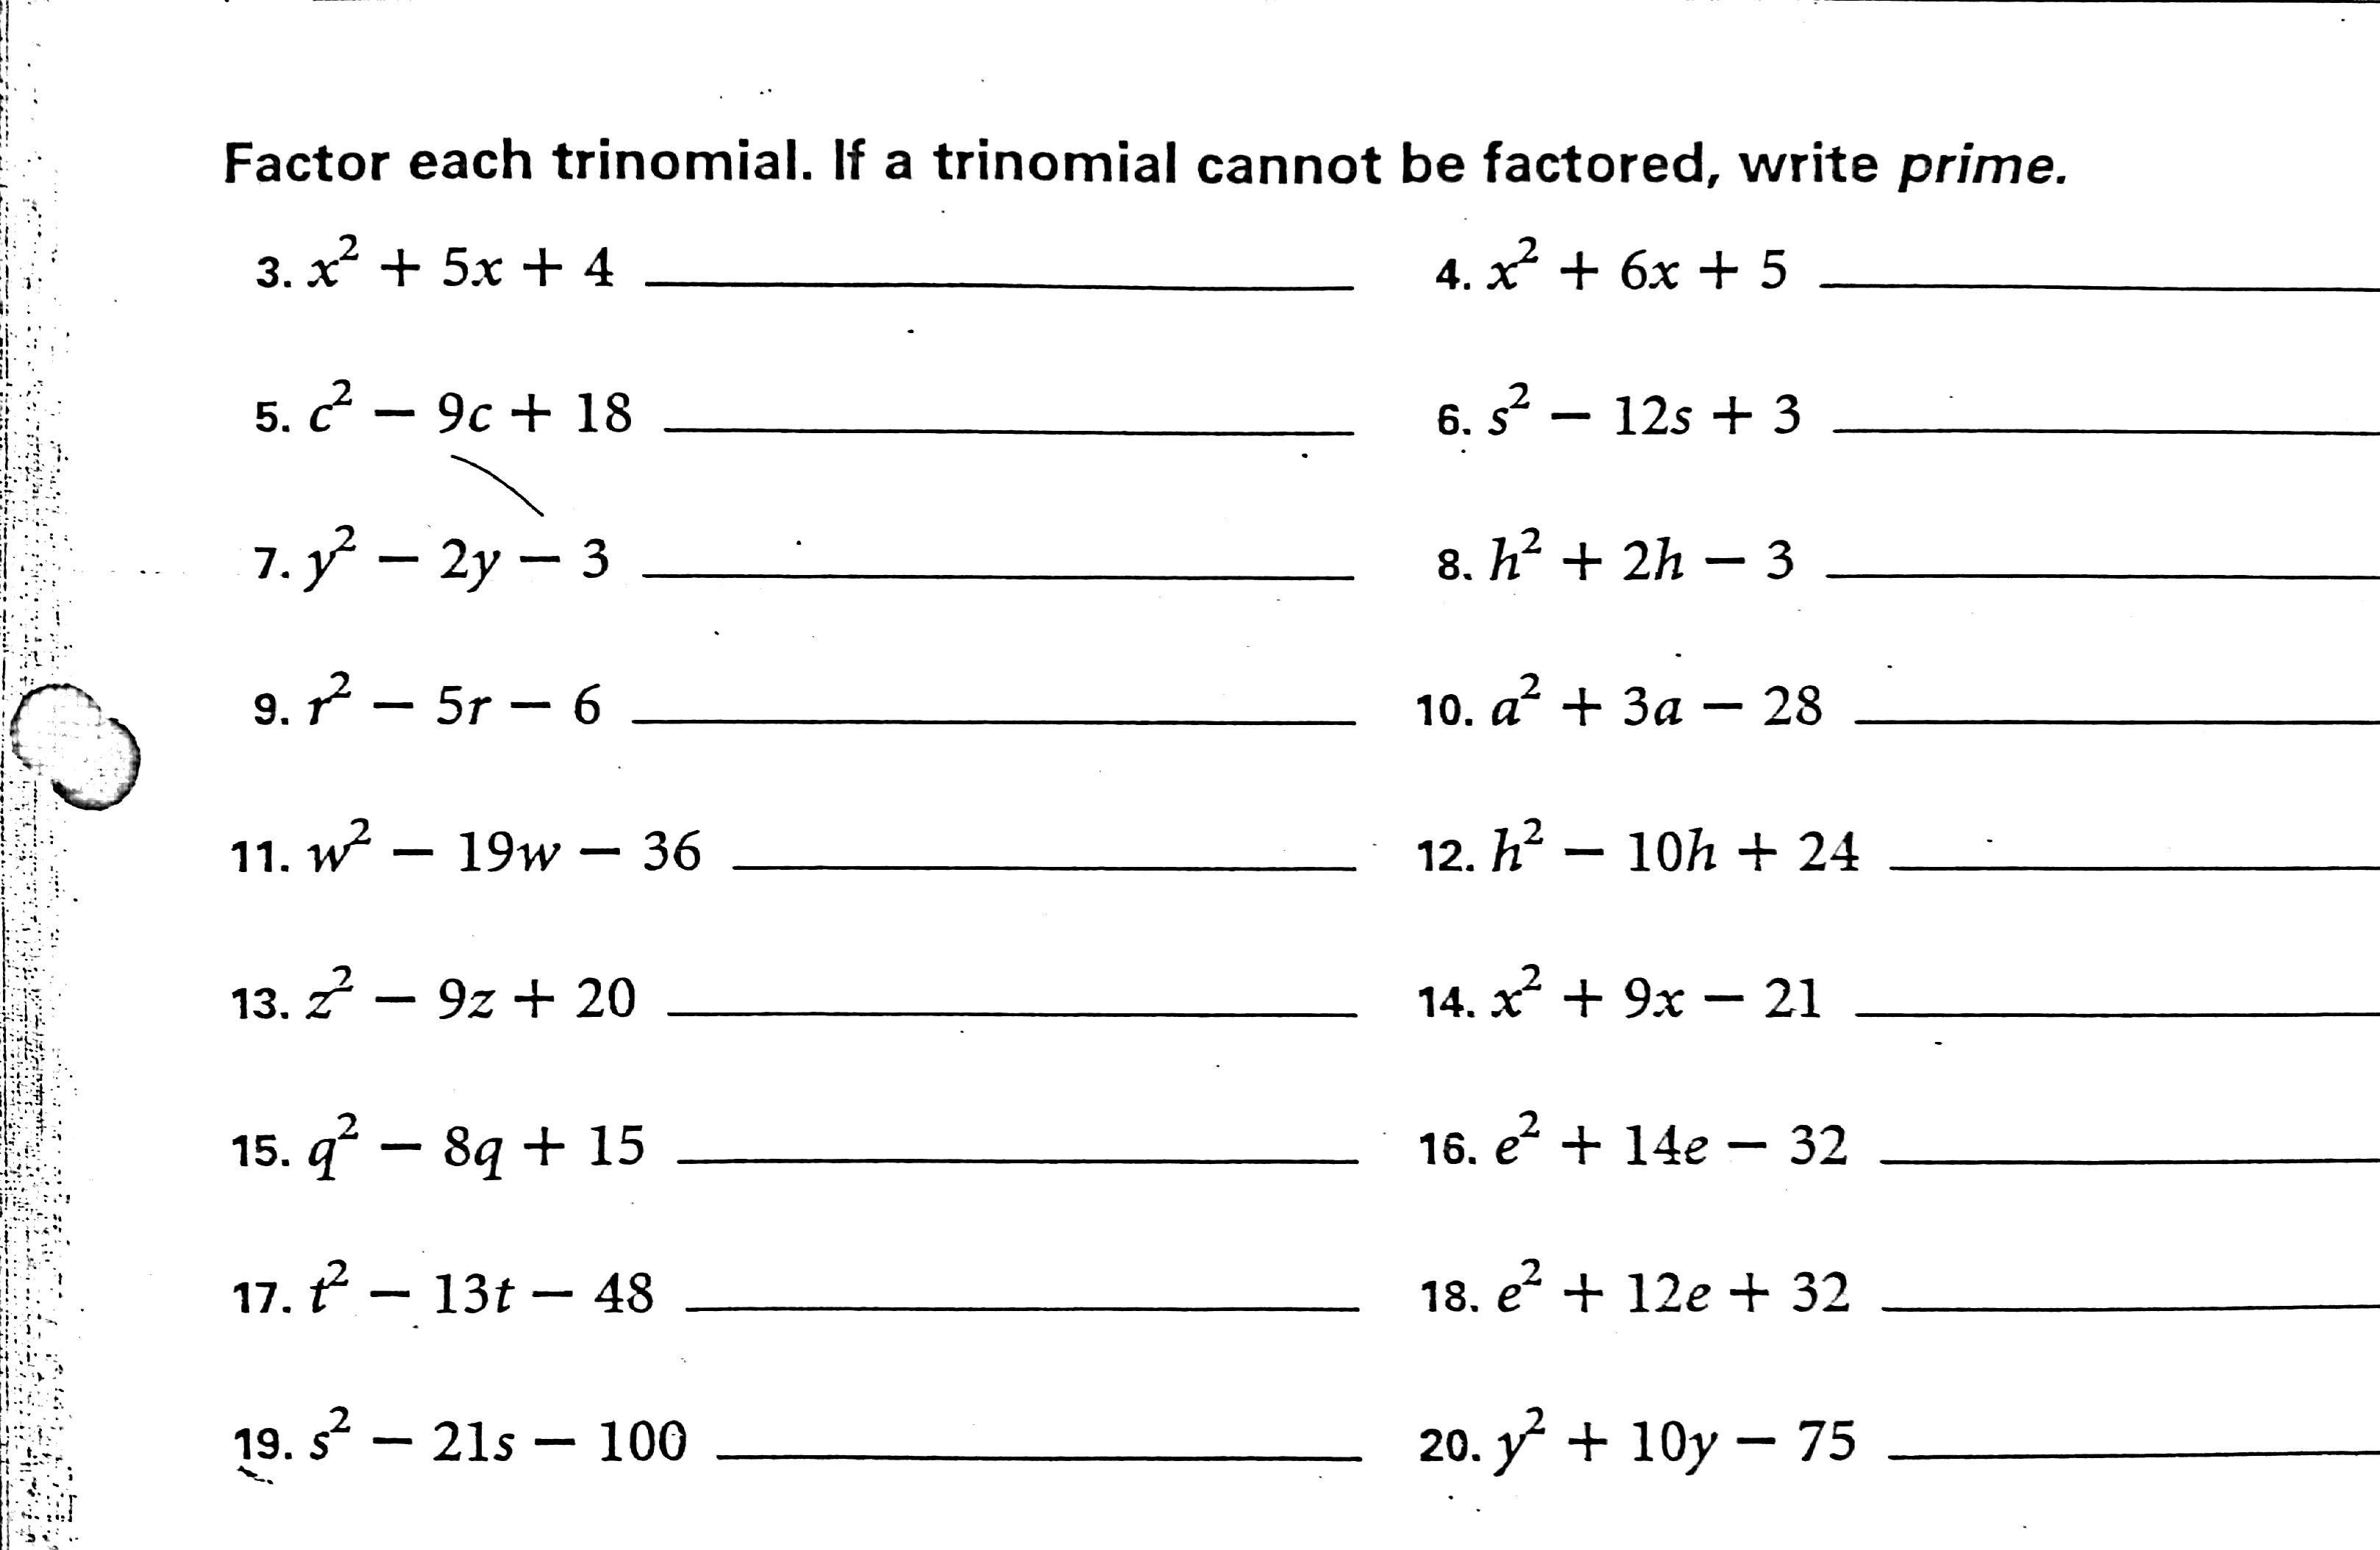 Proatmealus  Wonderful Factoring Worksheet  Delwfgcom With Foxy Factoring Polynomials Practice Worksheet With Answers Coterraneo With Breathtaking Final Sounds Worksheets Also Parallel Sentence Structure Worksheet In Addition Esl Adults Worksheets And Th Grade Adjectives Worksheets As Well As Plot Worksheets Th Grade Additionally Potential And Kinetic Energy Worksheets Middle School From Delwfgcom With Proatmealus  Foxy Factoring Worksheet  Delwfgcom With Breathtaking Factoring Polynomials Practice Worksheet With Answers Coterraneo And Wonderful Final Sounds Worksheets Also Parallel Sentence Structure Worksheet In Addition Esl Adults Worksheets From Delwfgcom